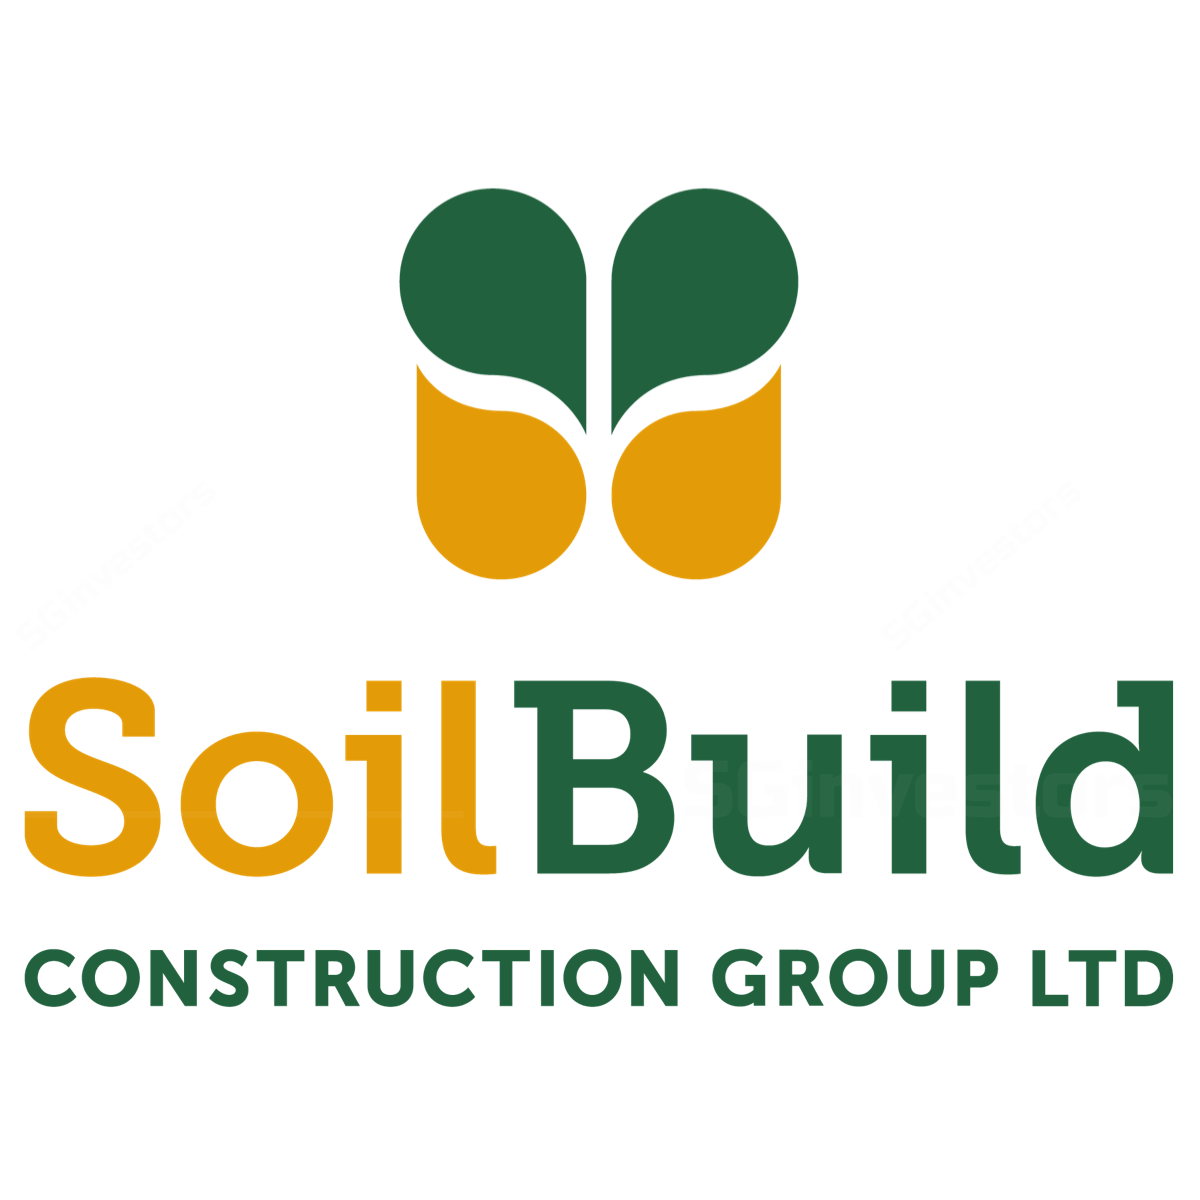 Soilbuild Construction Group - CIMB Research 2018-04-09: Leading Builder In Singapore